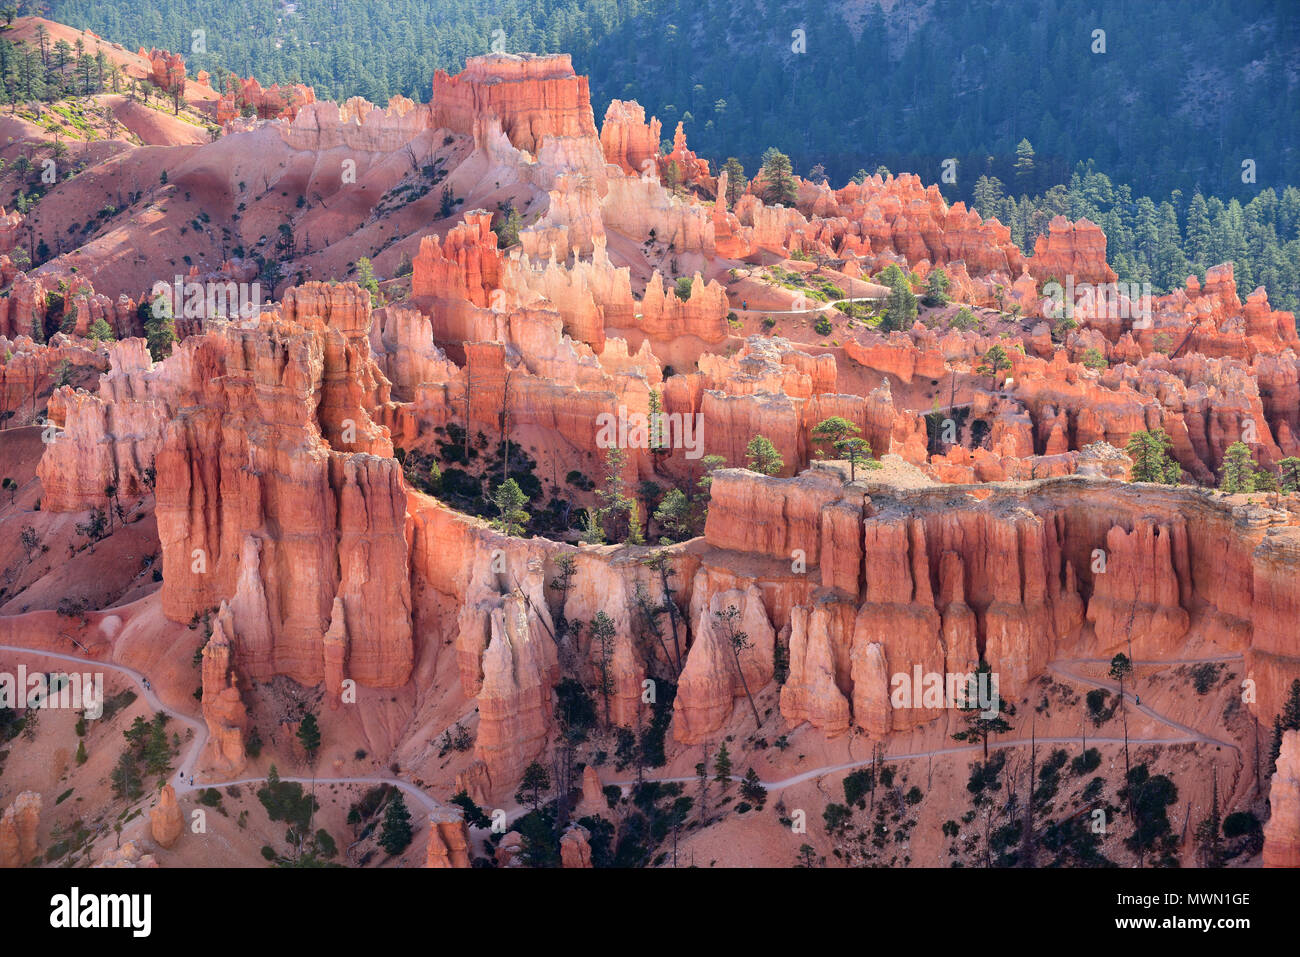 A trail among the hoodoos in Bryce Canyon National Park, Utah, USA - Stock Image